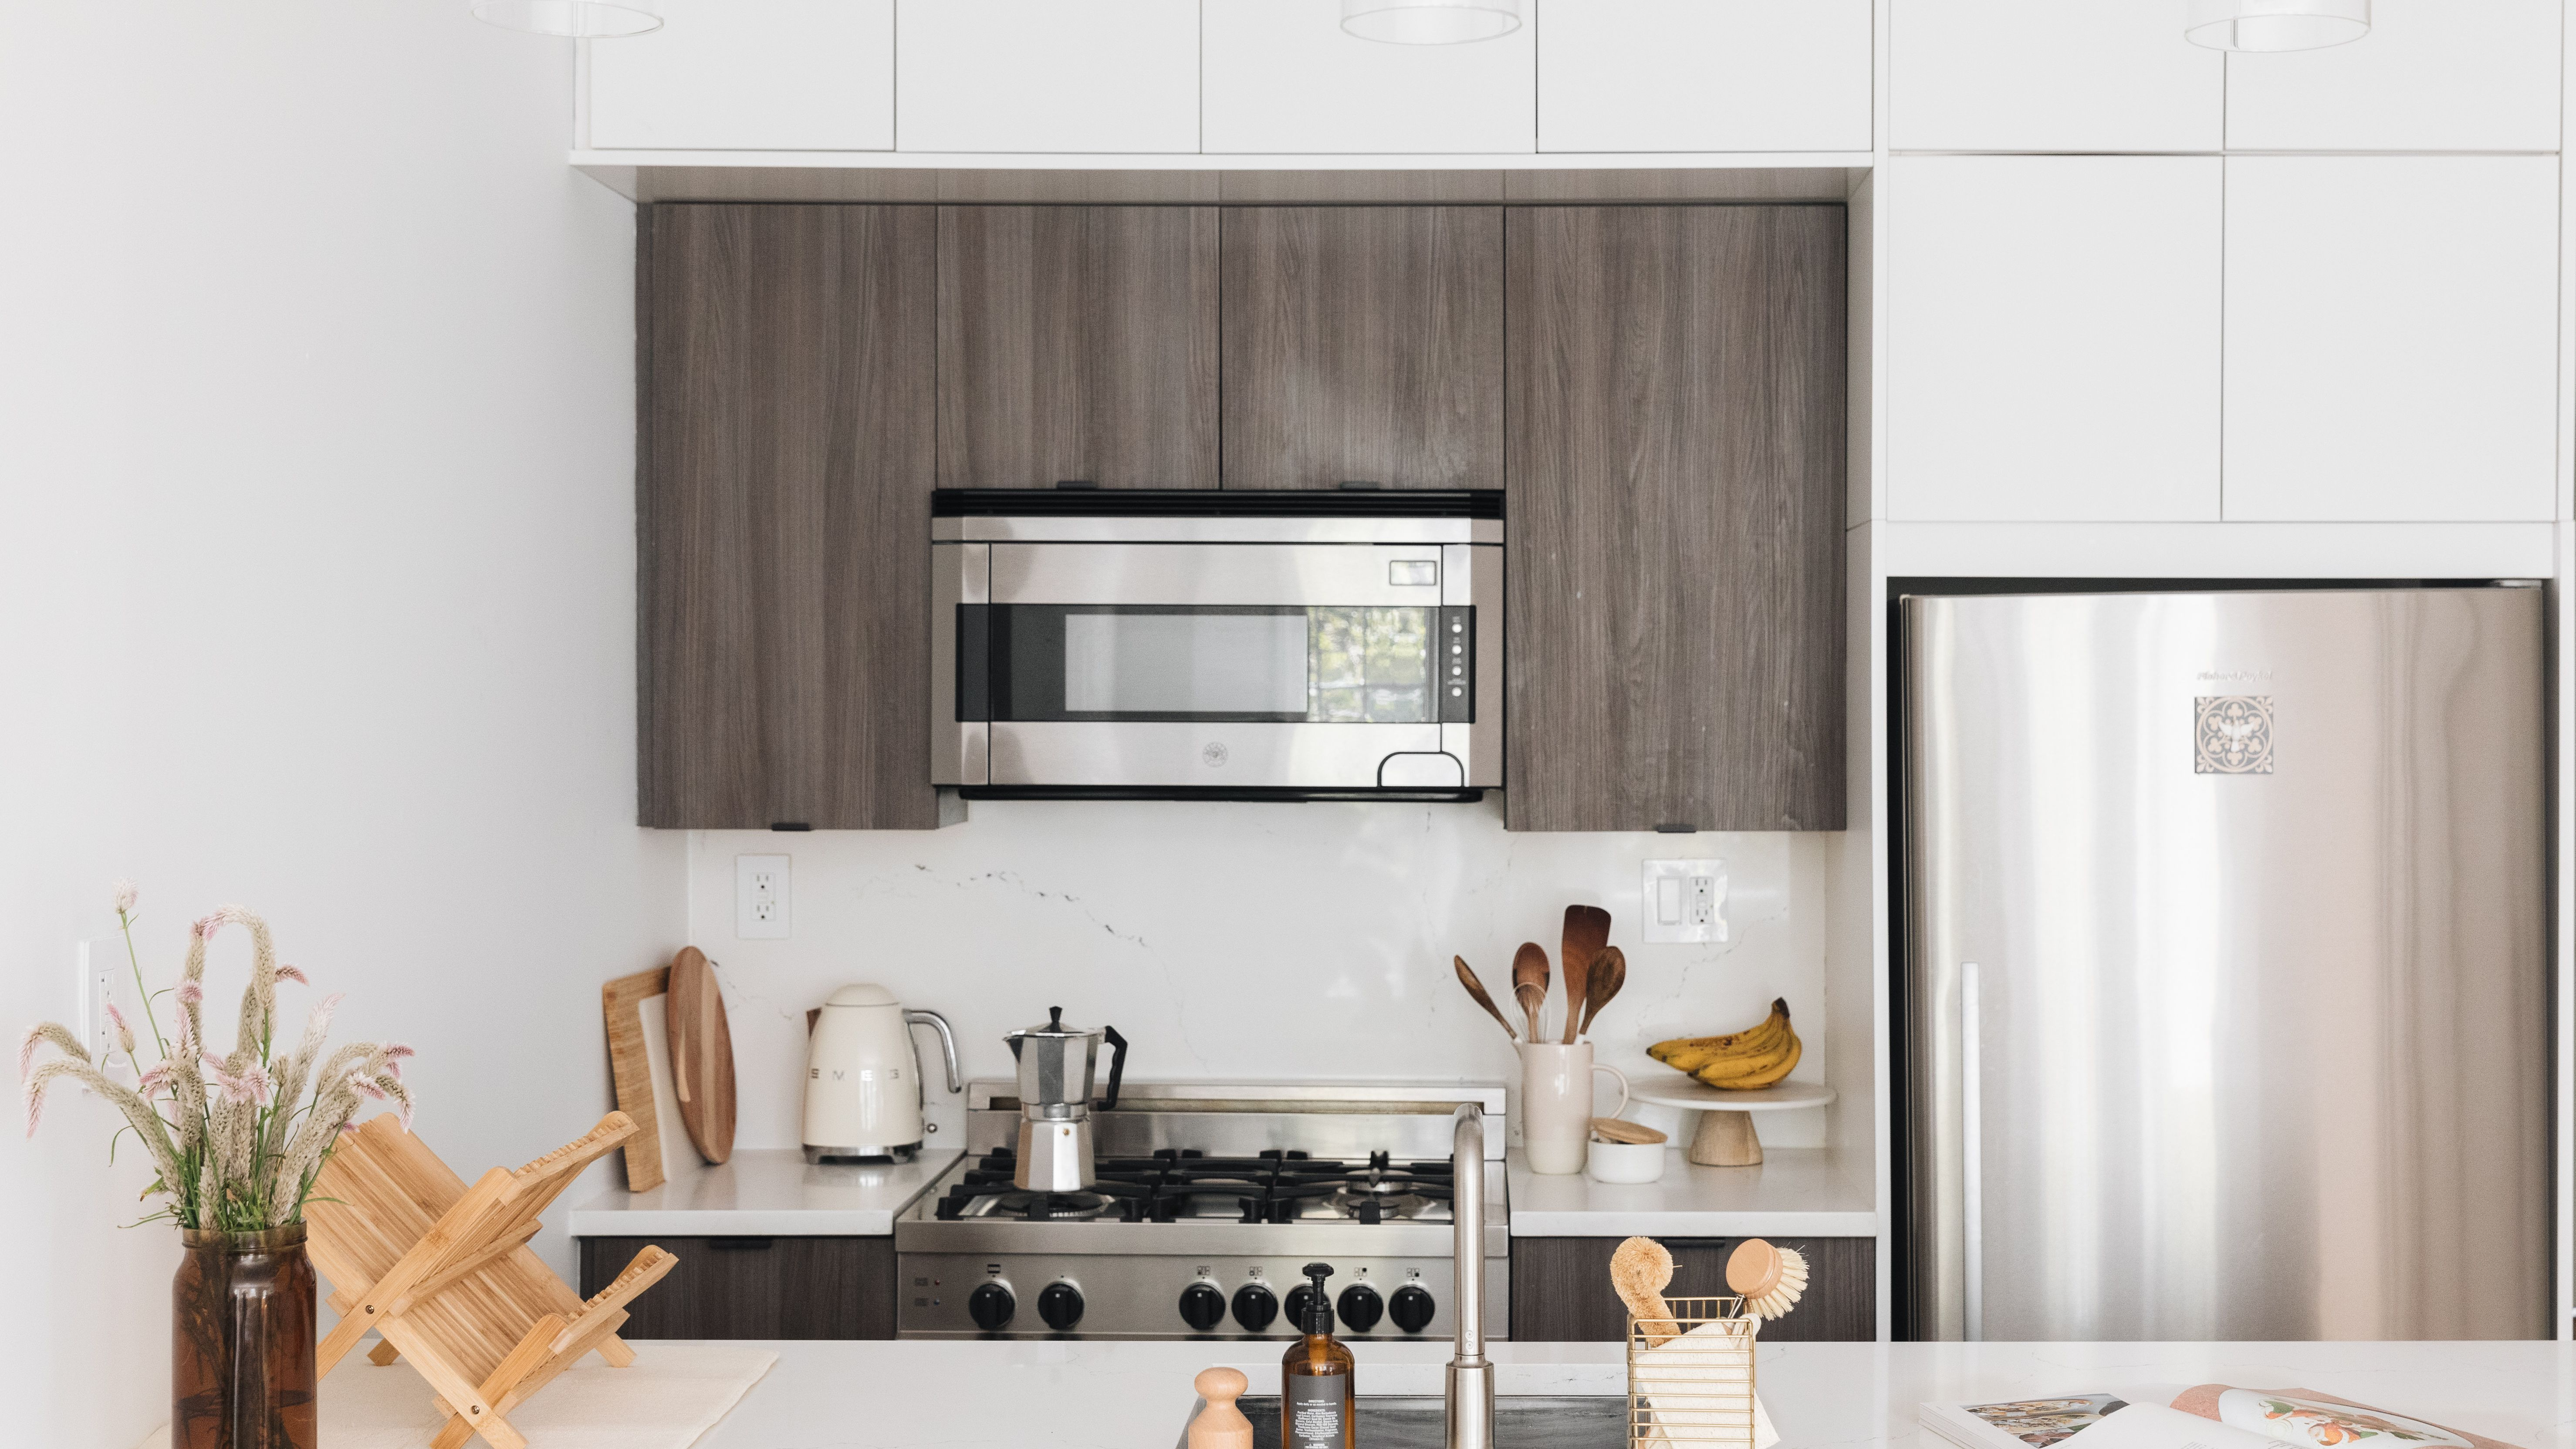 What You Ll Need To Equip Your First Kitchen